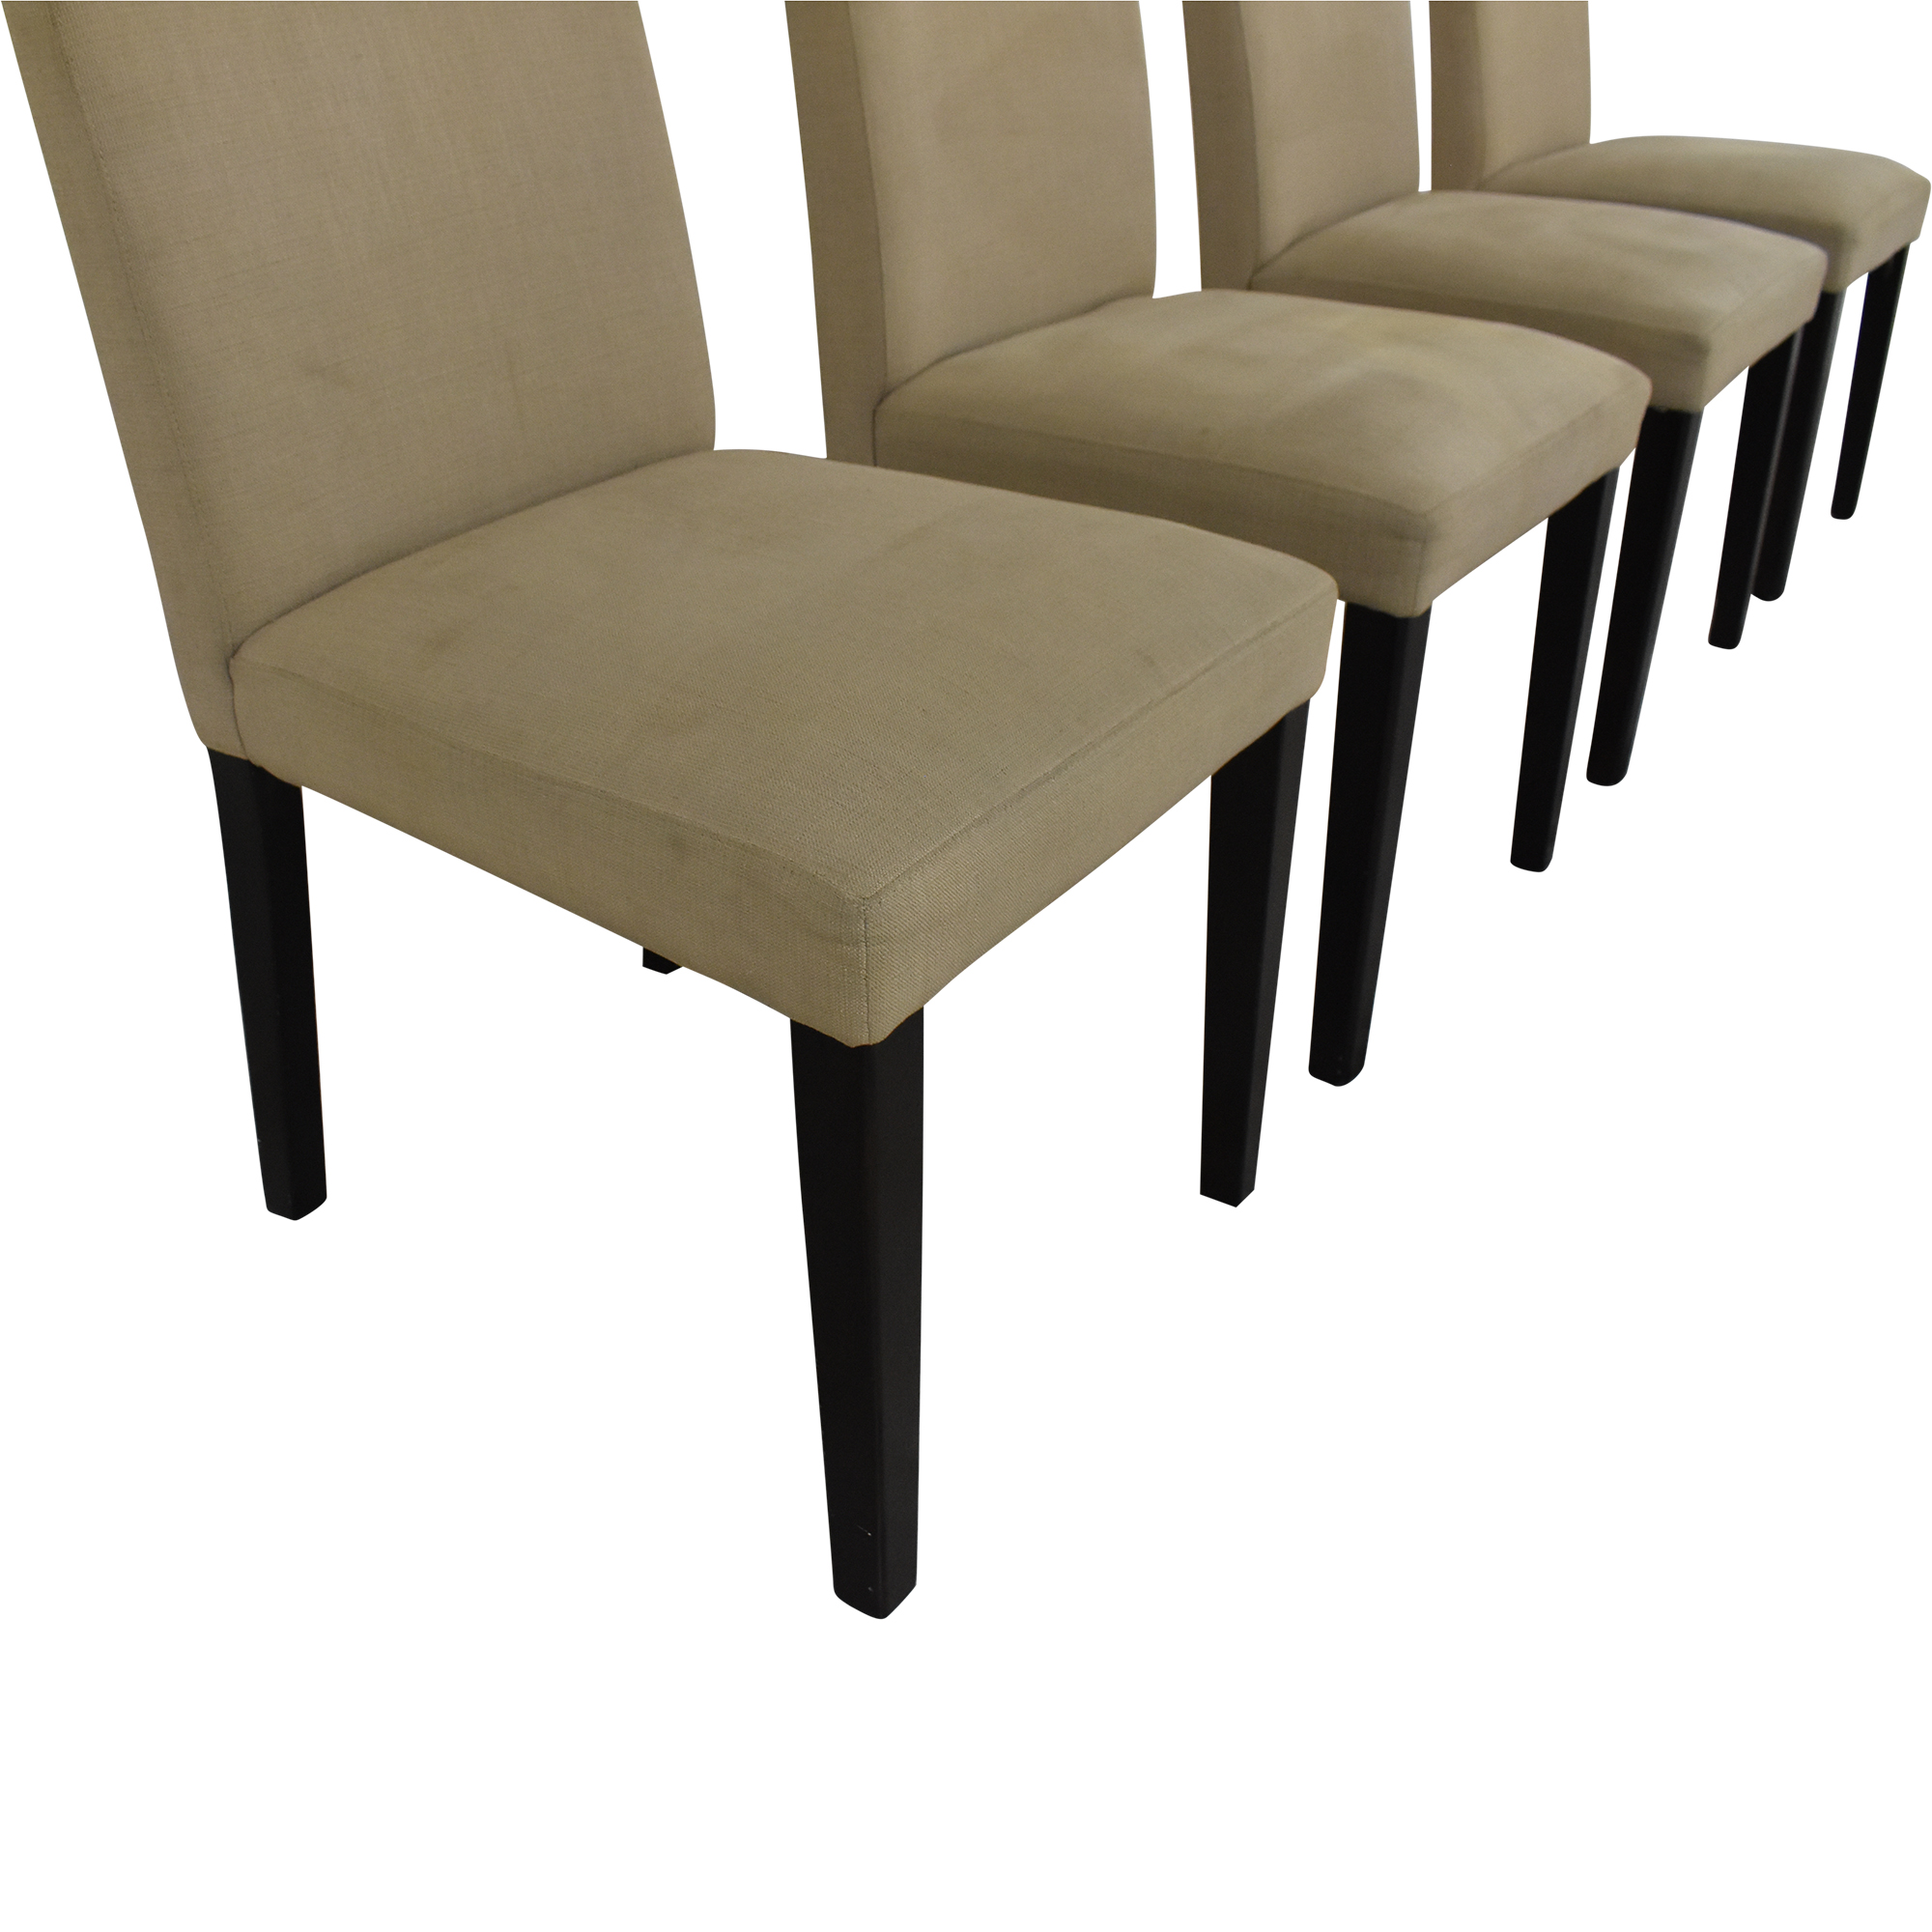 West Elm West Elm Porter Dining Chairs ma